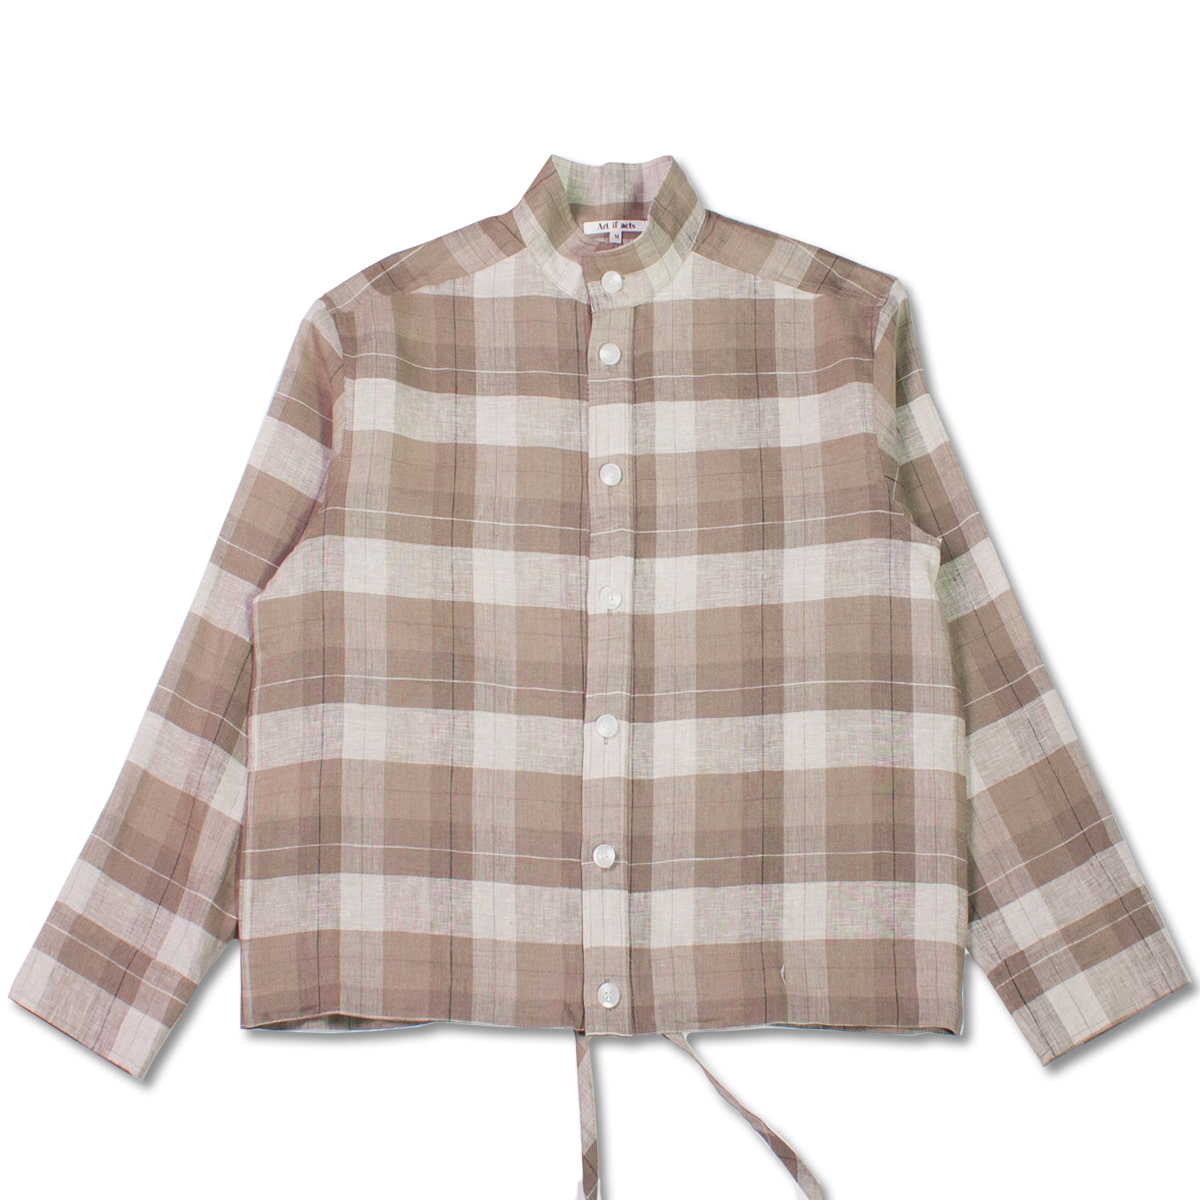 [ART IF ACTS] STAND COLLAR SHIRTS 'CHECK BROWN'